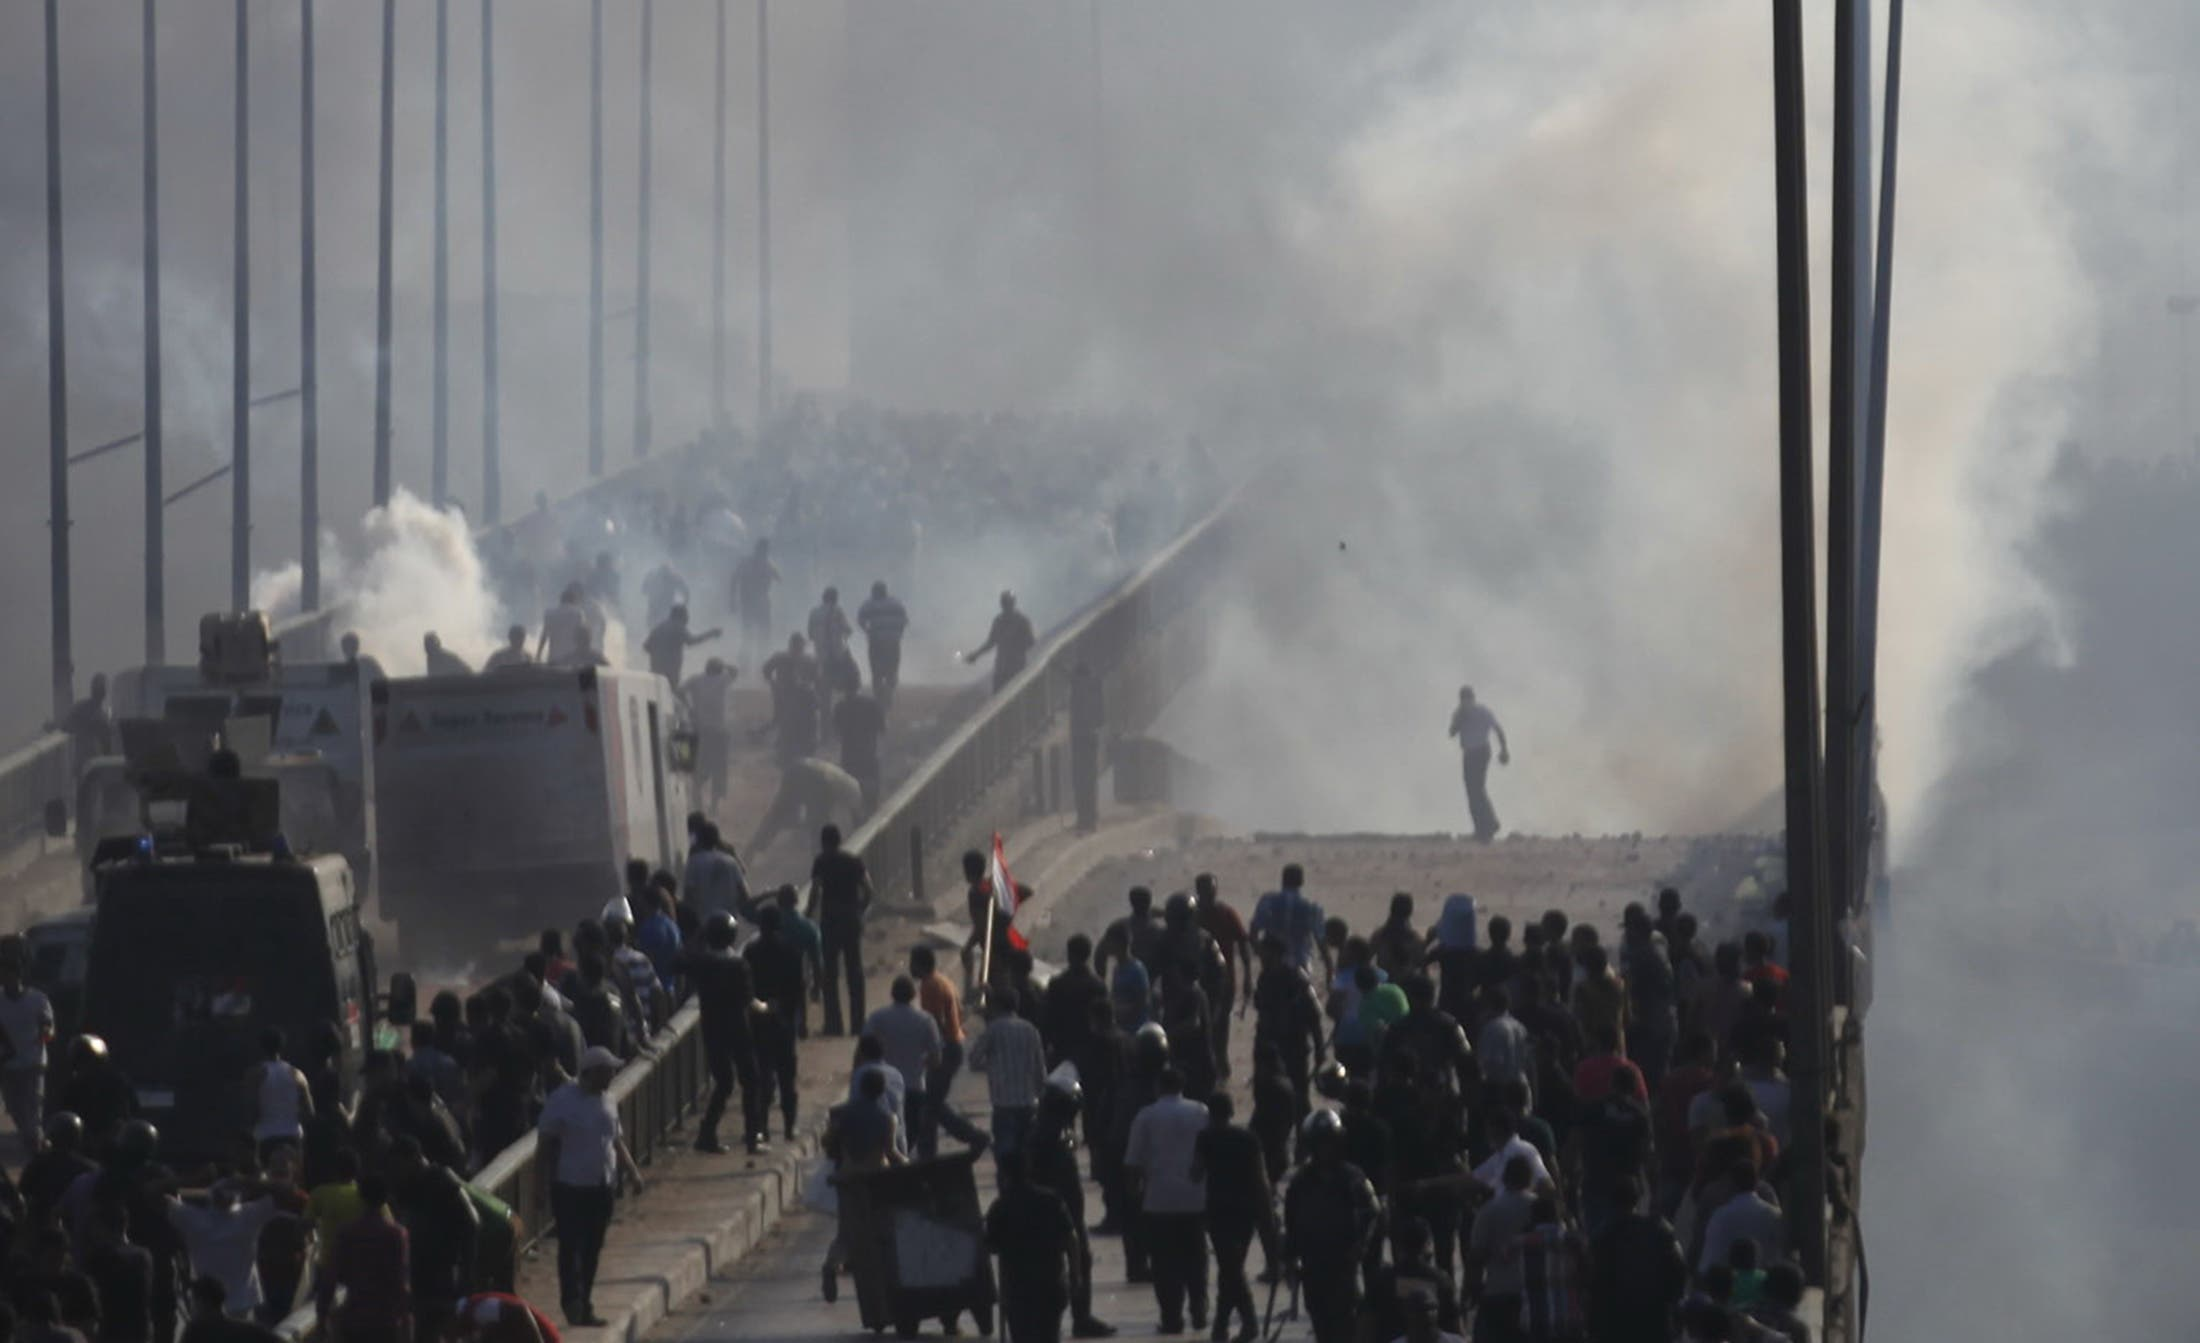 Members of the Muslim Brotherhood flee from tear gas and rubber bullets fired by riot police during clashes, on a bridge leading to Rabba el Adwia Square where they are camping, in Cairo August 14, 2013. (Reuters)